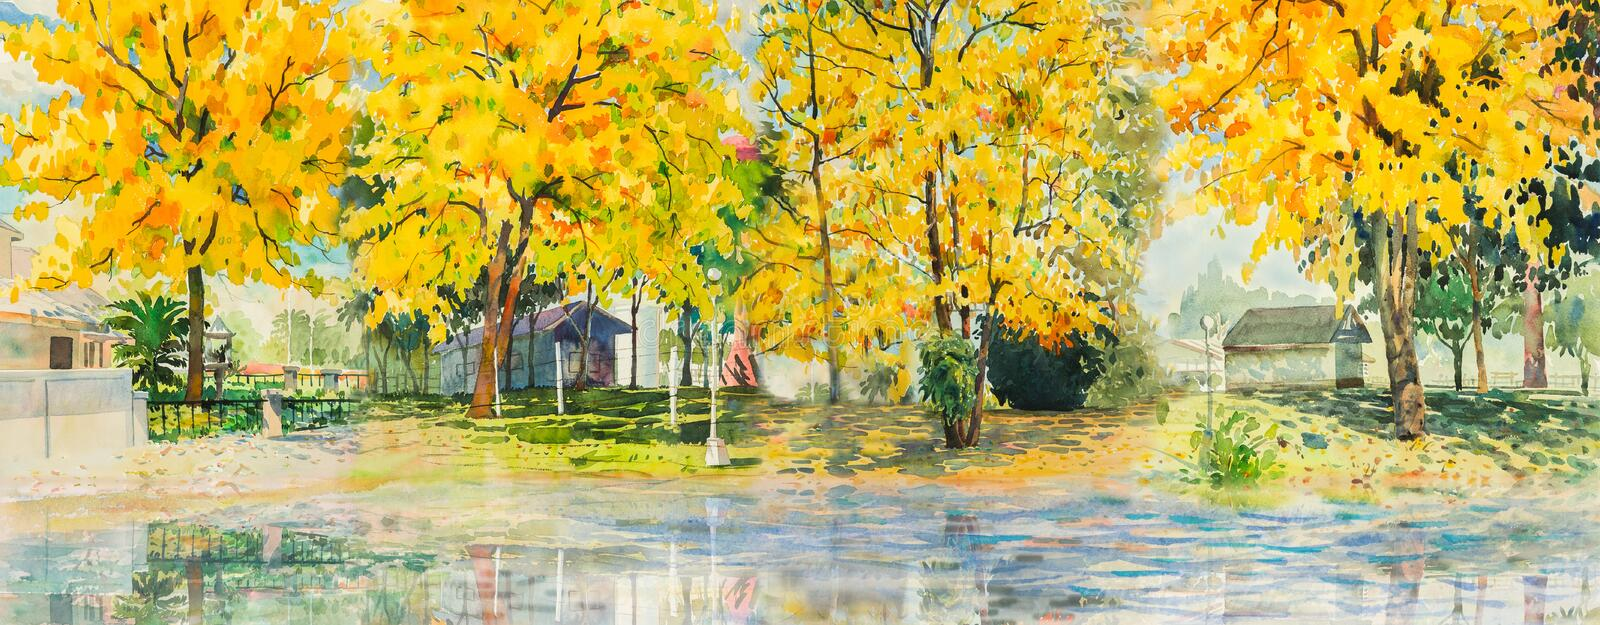 Spring trees painting watercolor landscape of flowers stock download spring trees painting watercolor landscape of flowers stock illustration illustration of artistic mightylinksfo